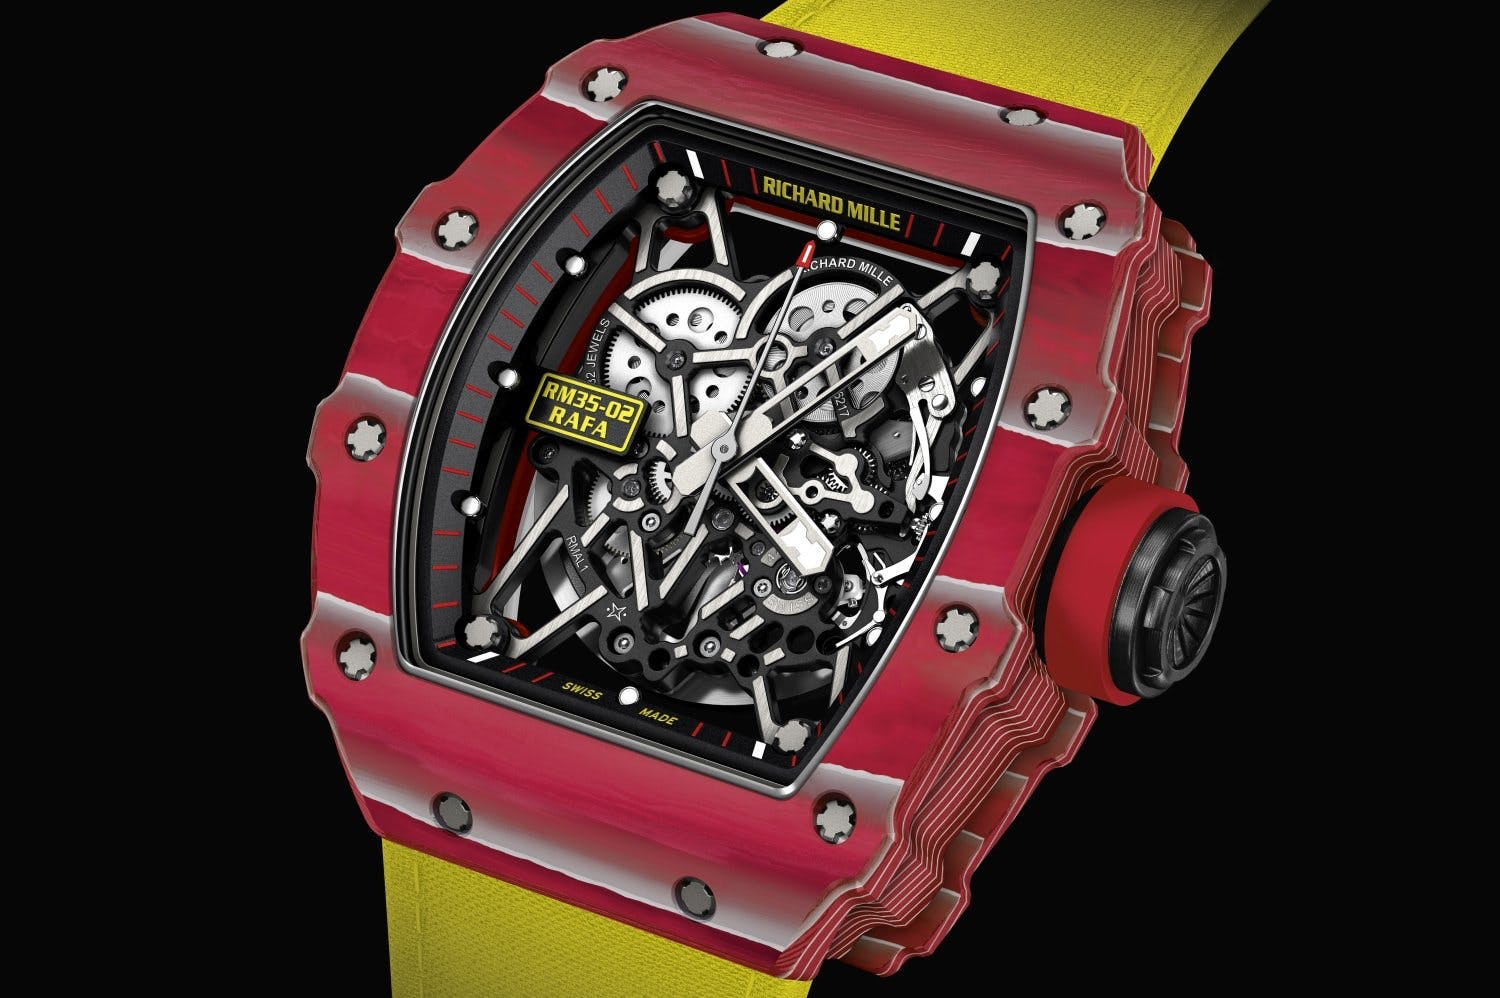 Richard Mille RM 35-02 – Shock Resistant to 5,000 G